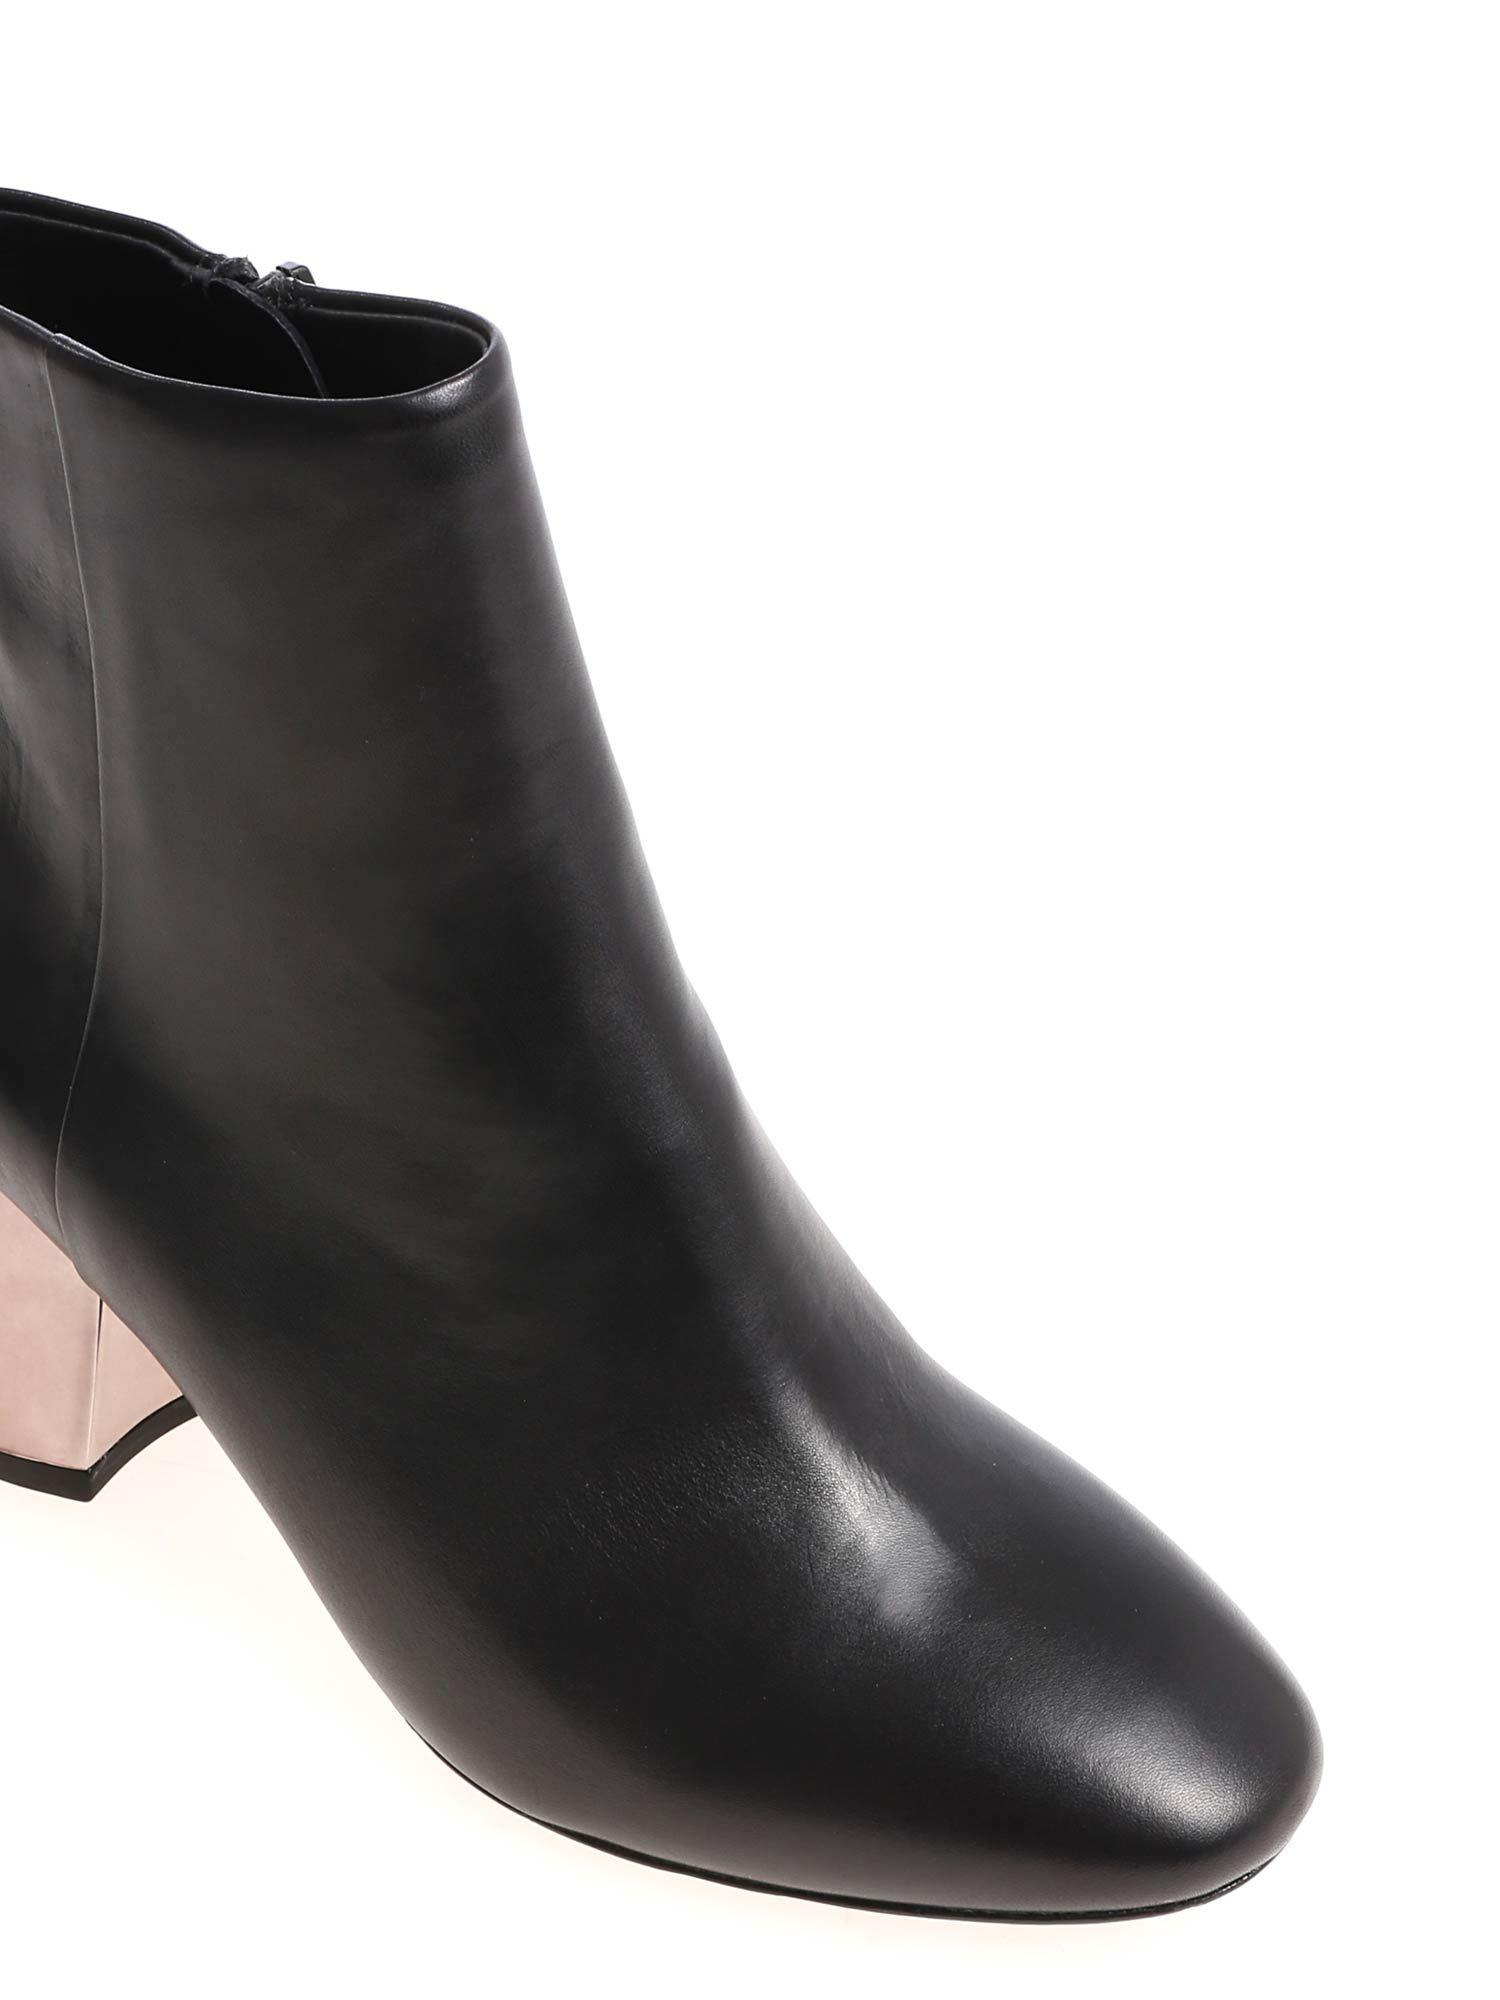 separation shoes on wholesale elegant shoes Black Harlem Ankle Boots With Silver Heel